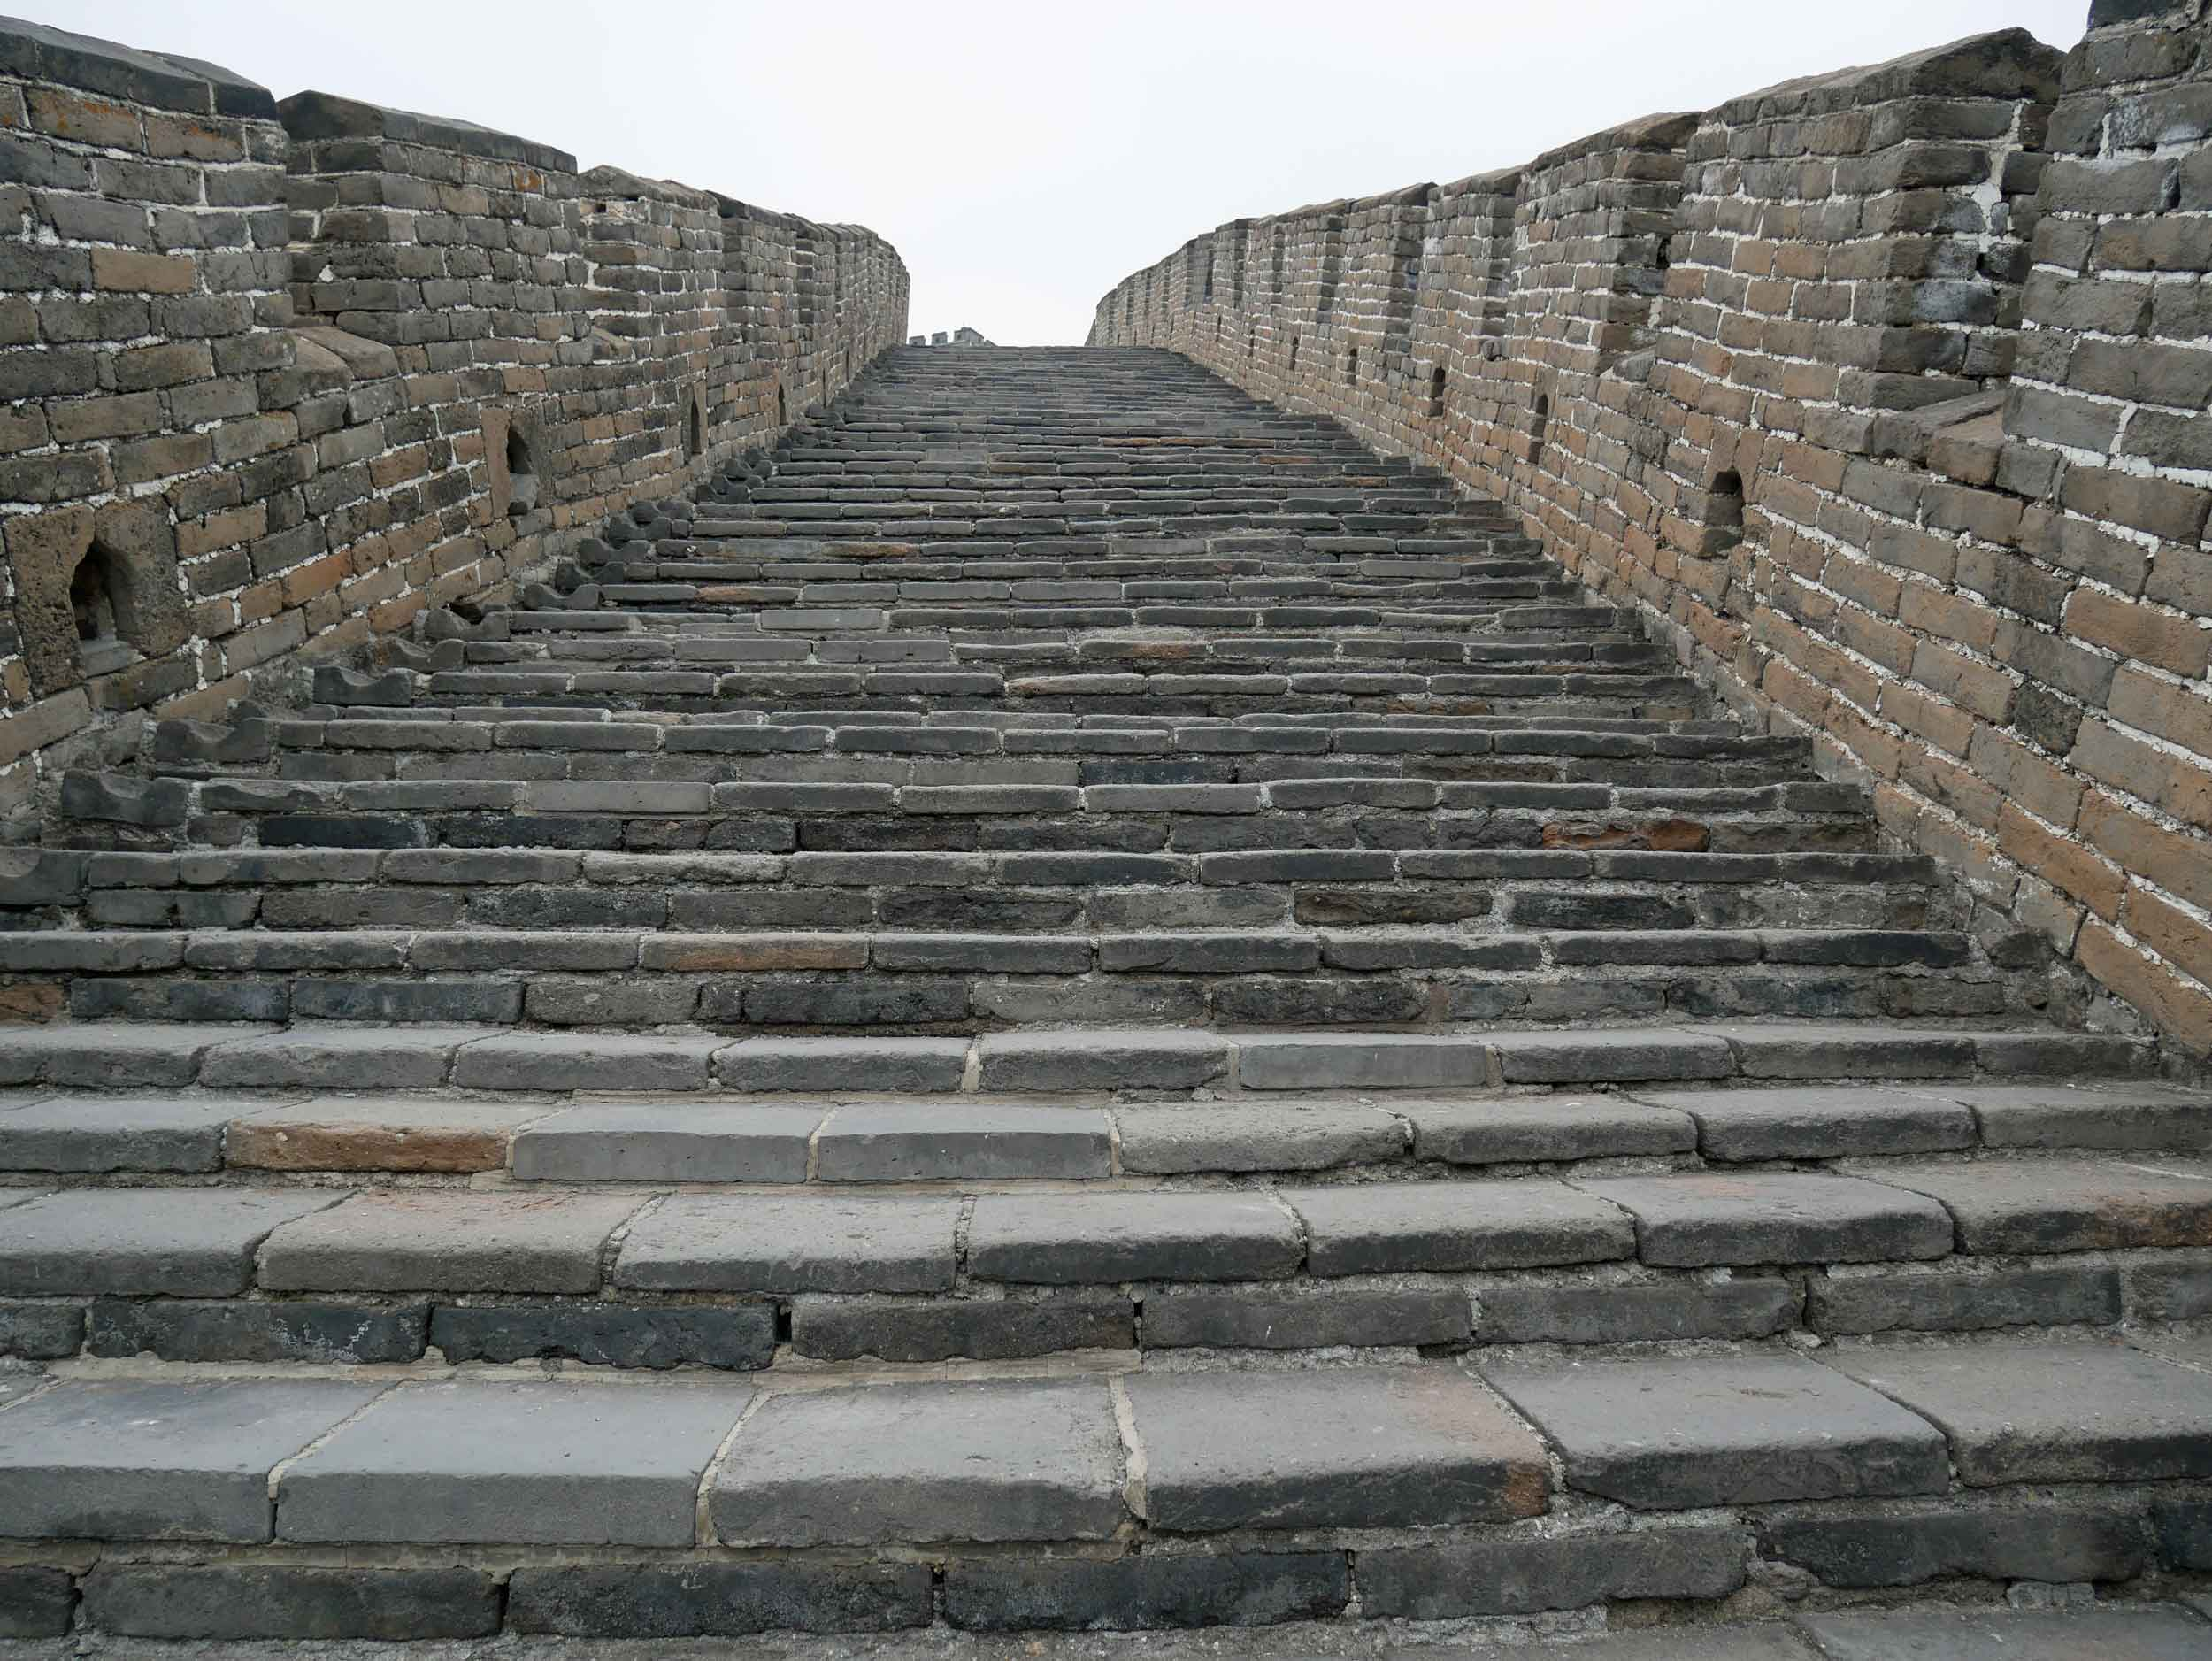 The ancient steps that lead up the many inclines and descents of the Wall.